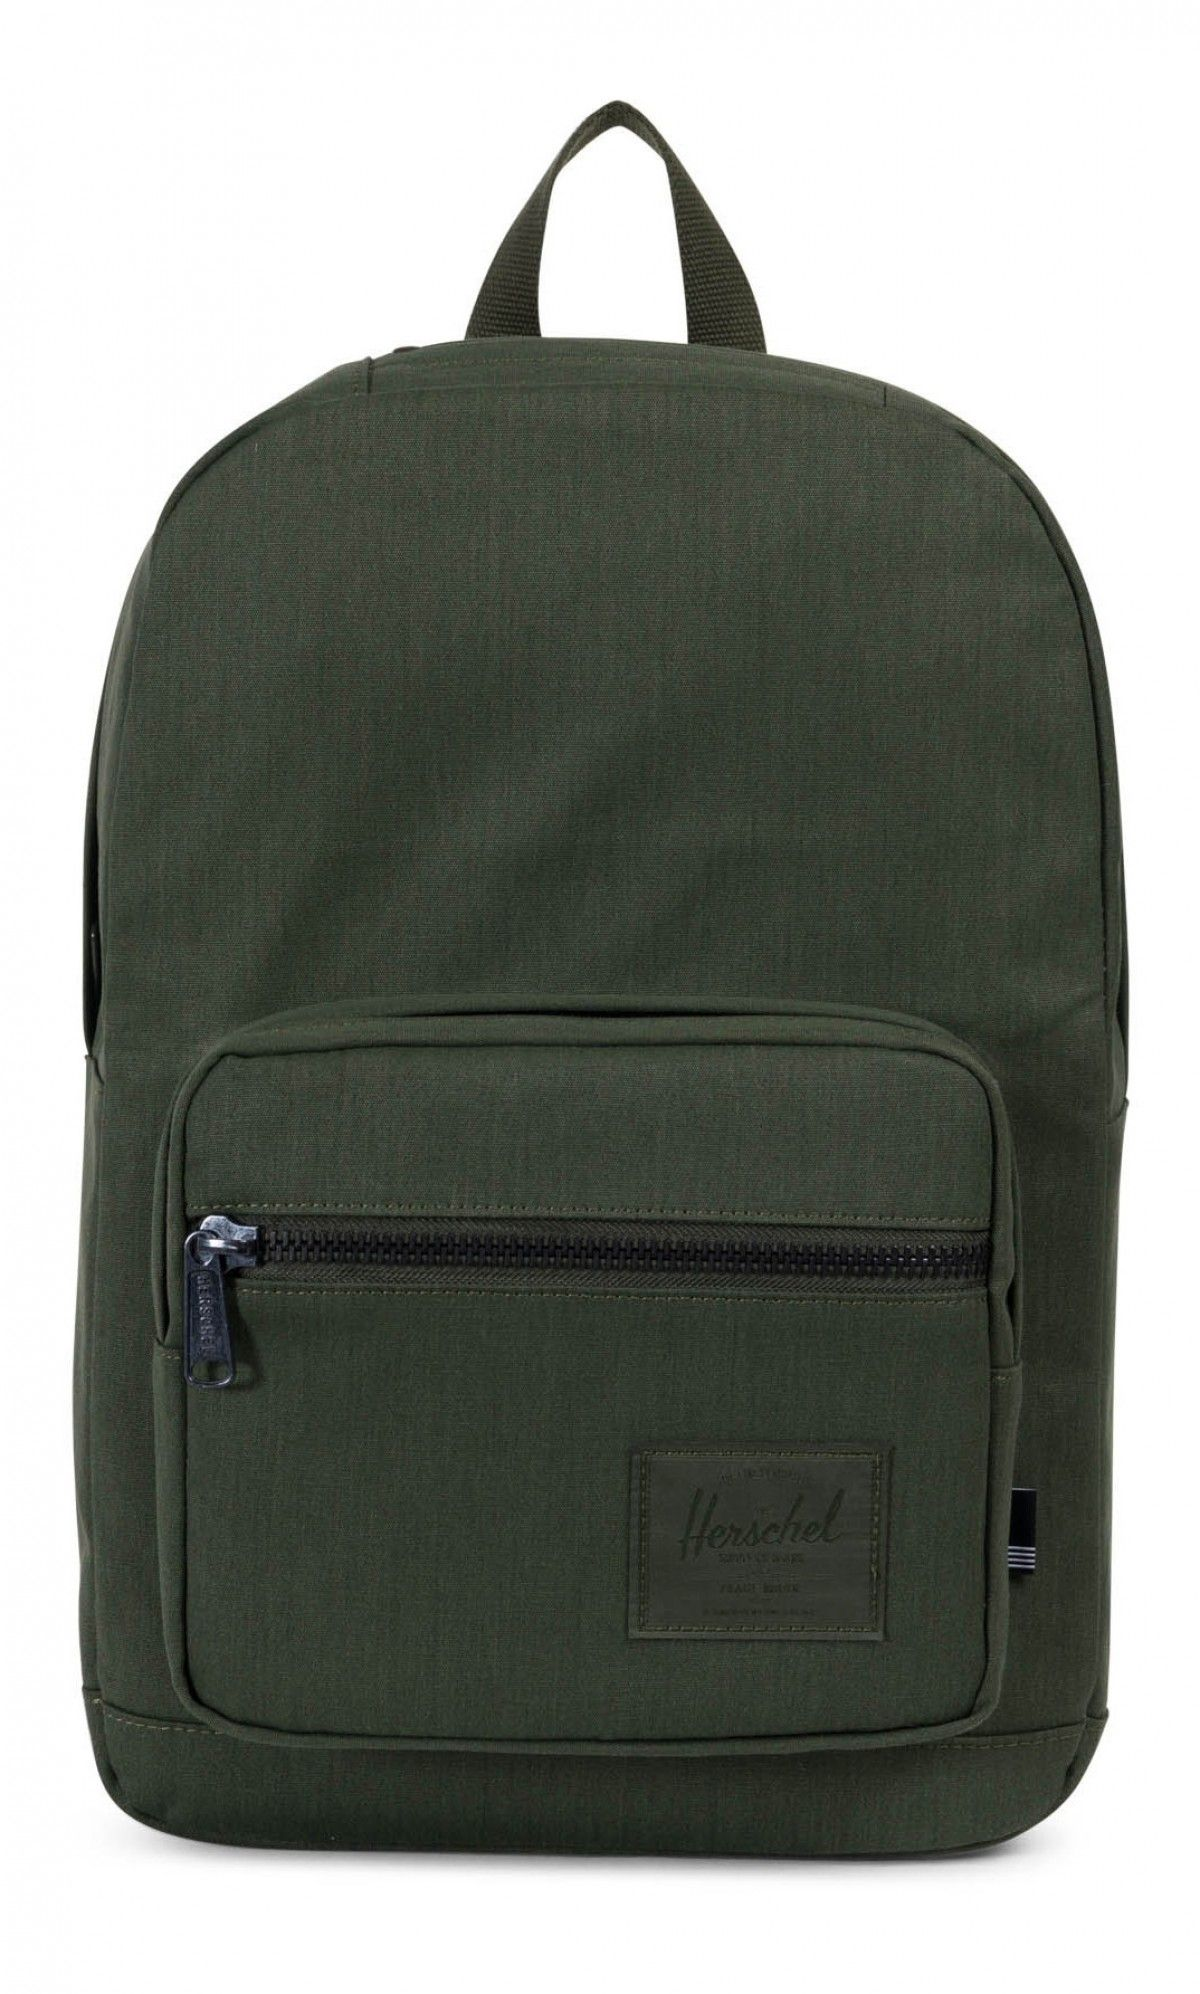 a67d96d8bdb Herschel Pop Quiz Backpack Forest Night